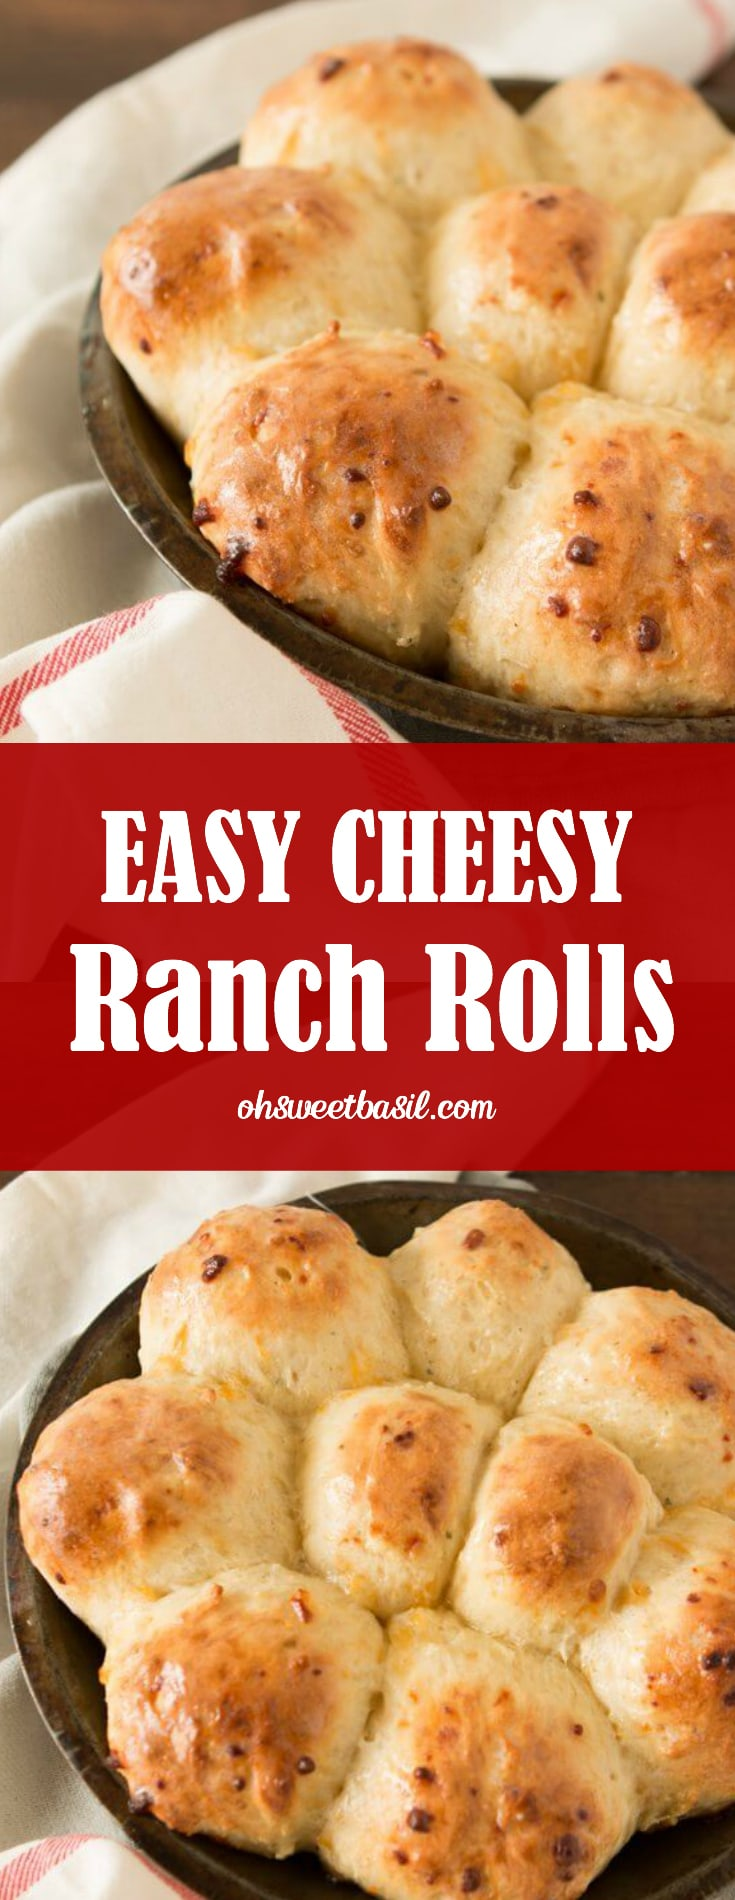 A pan of the best easy cheesy ranch rolls